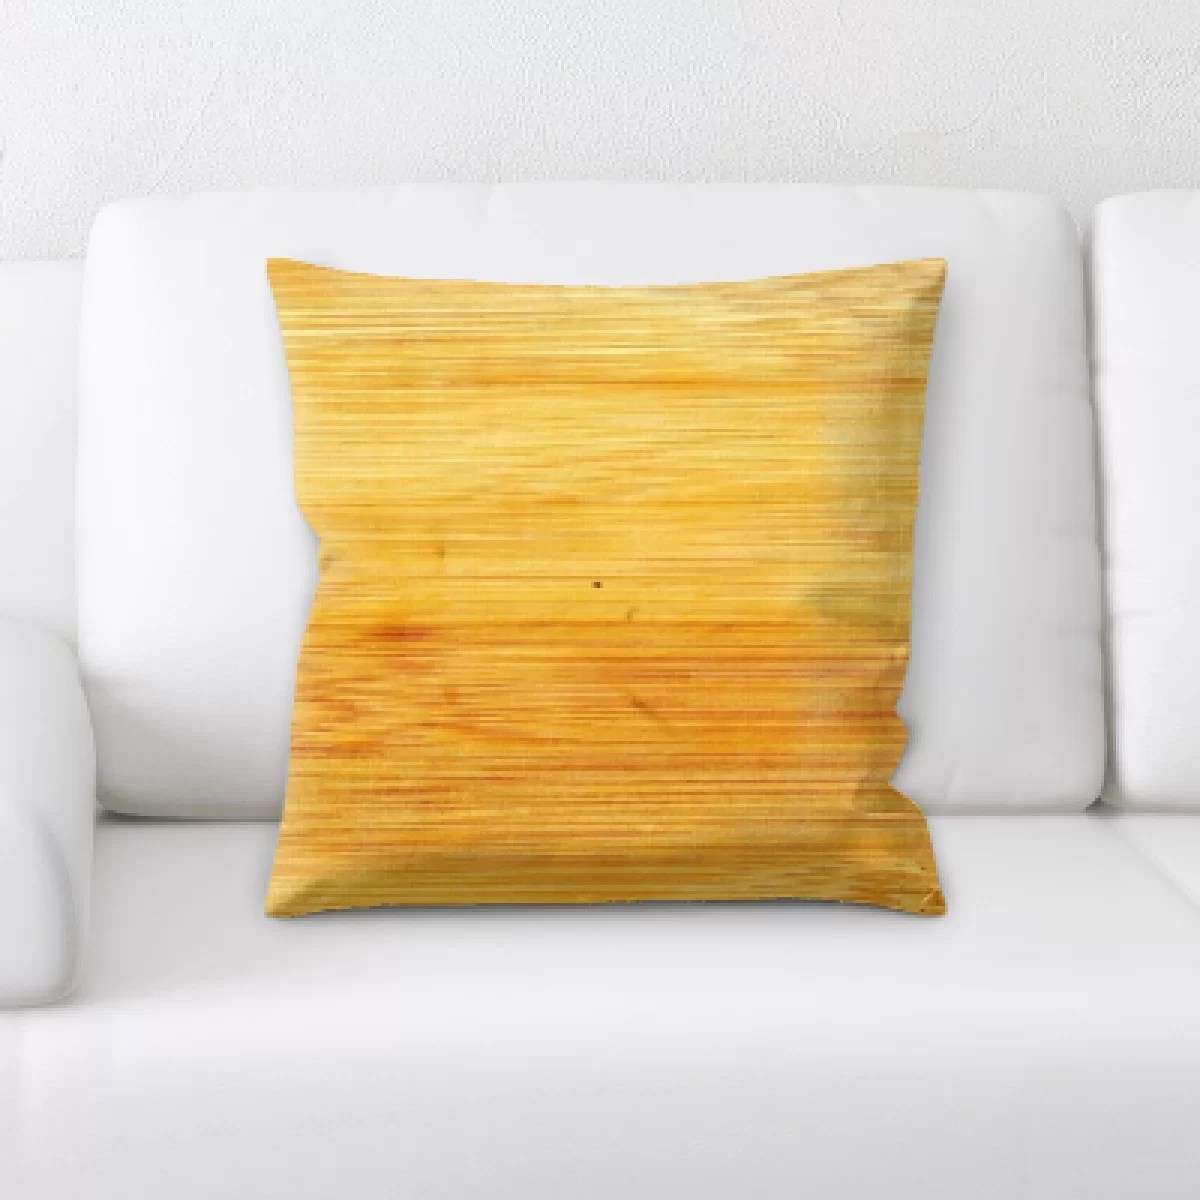 Campbelltown Furniture Ebern Designs Campbelltown Wooden Texture Throw Pillow